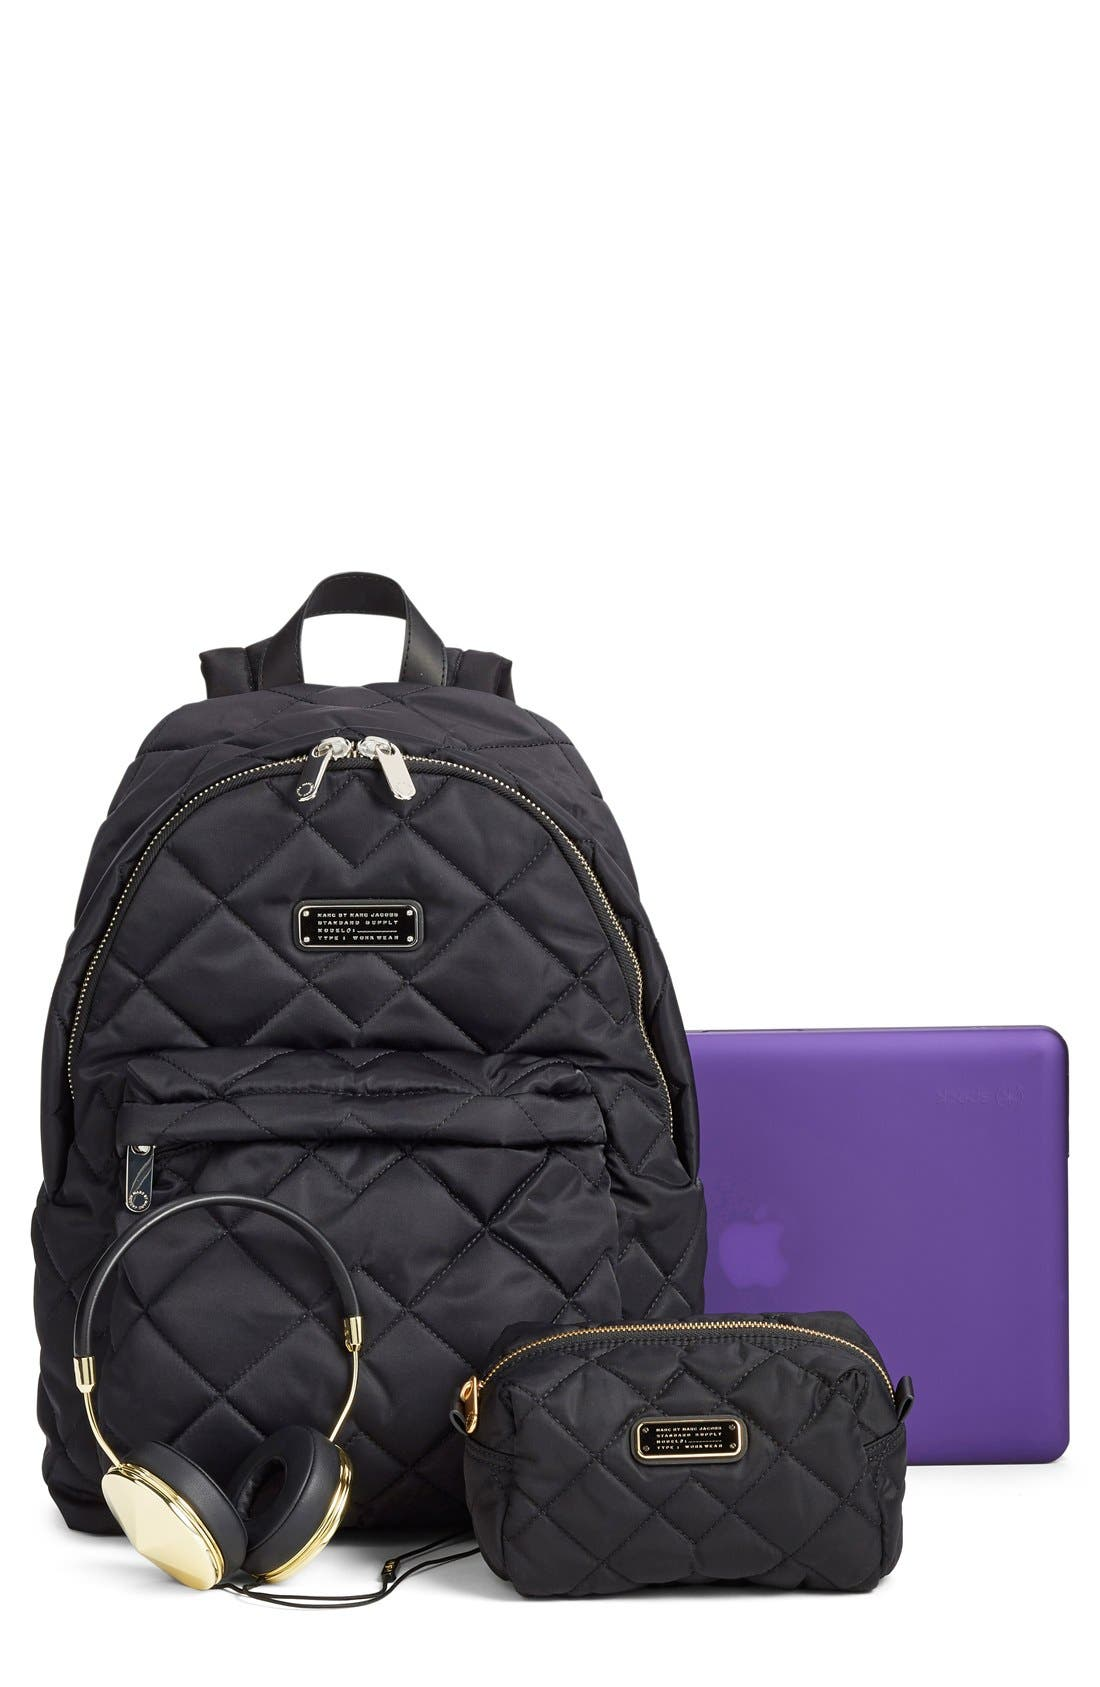 MARC BY MARC JACOBS 'Crosby' Quilted Nylon Backpack,                             Alternate thumbnail 3, color,                             001